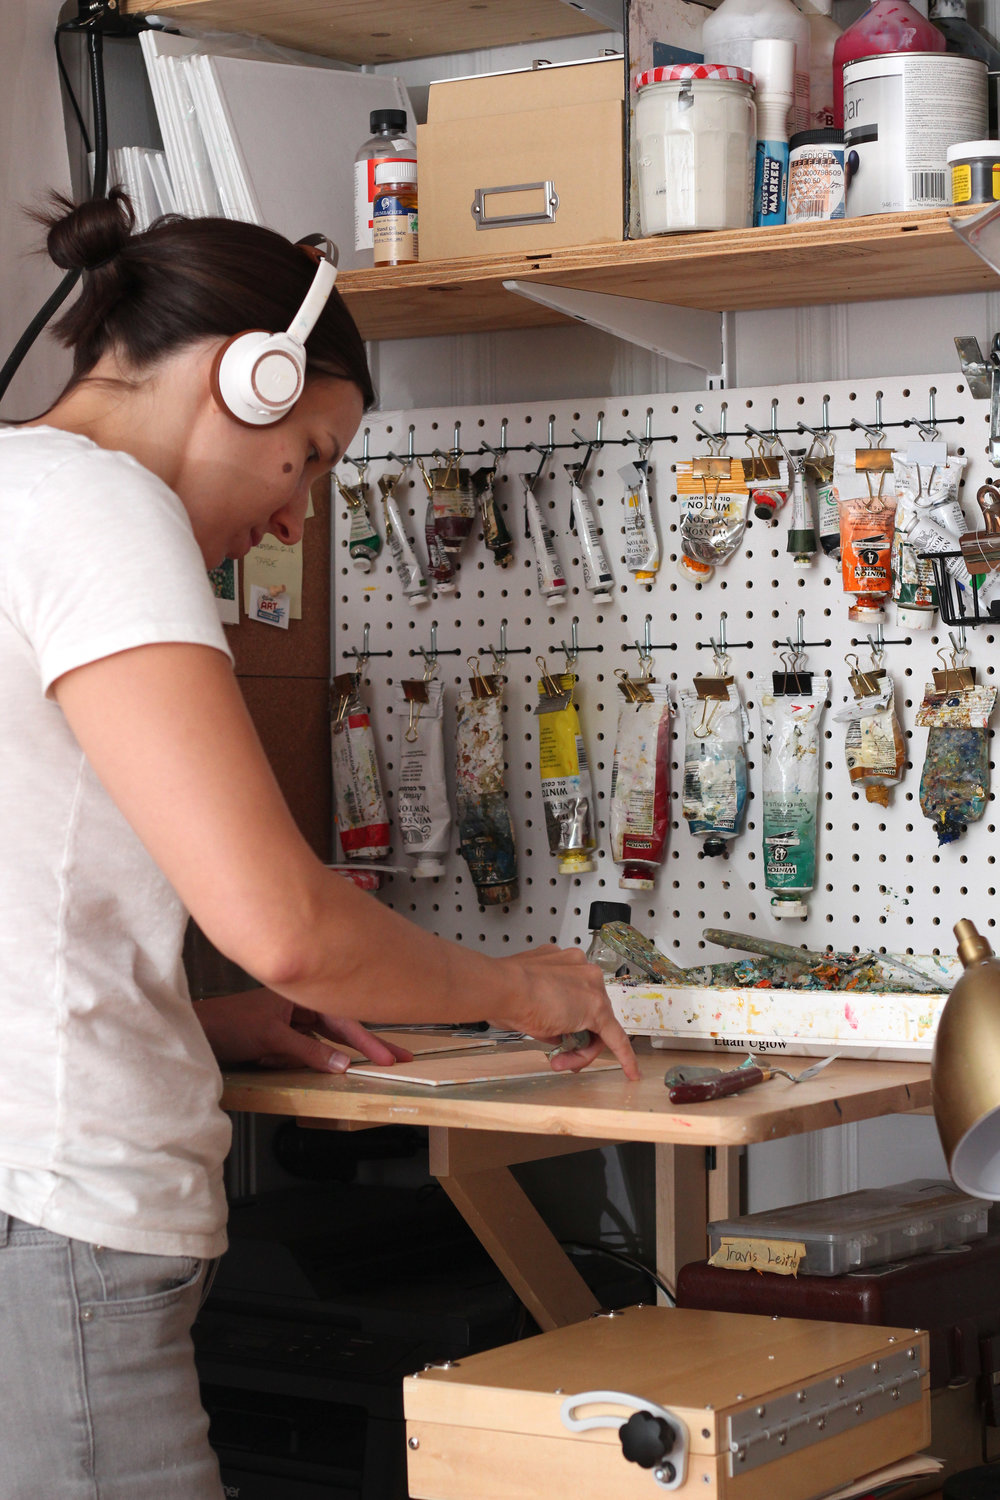 Fields working in her studio